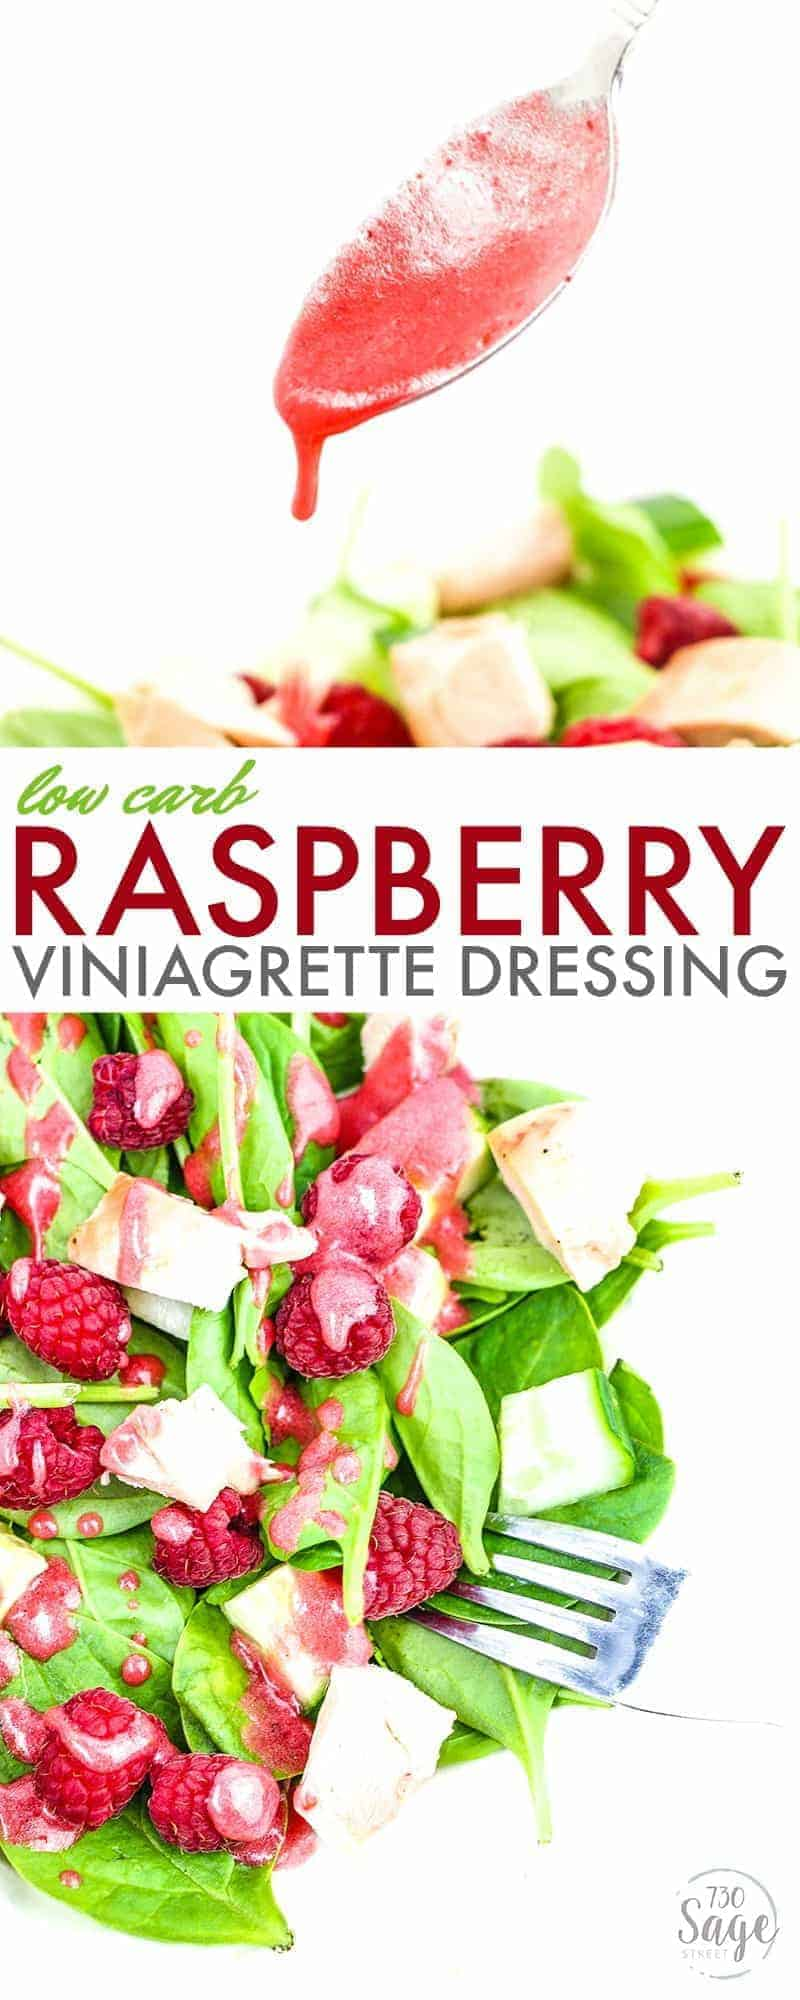 This low carb raspberry vinaigrette dressing is so stinkin' good. Perfect for ketogenic or low carb diets. Delicious flavor and super easy to make.